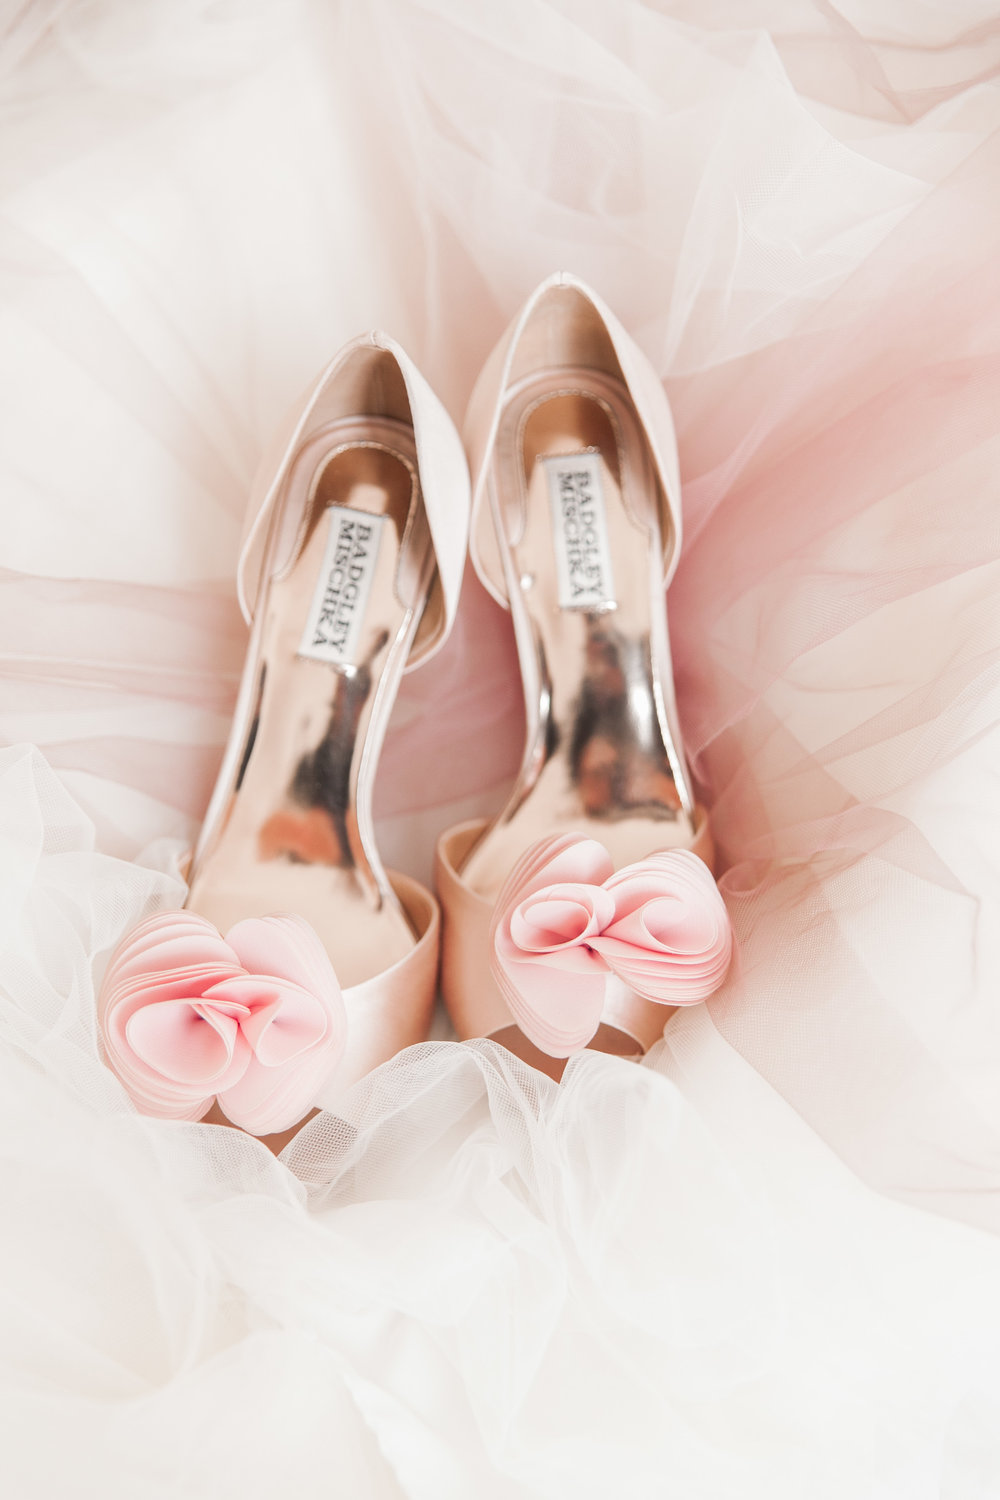 Blush pink Badgley Mischka wedding shoes